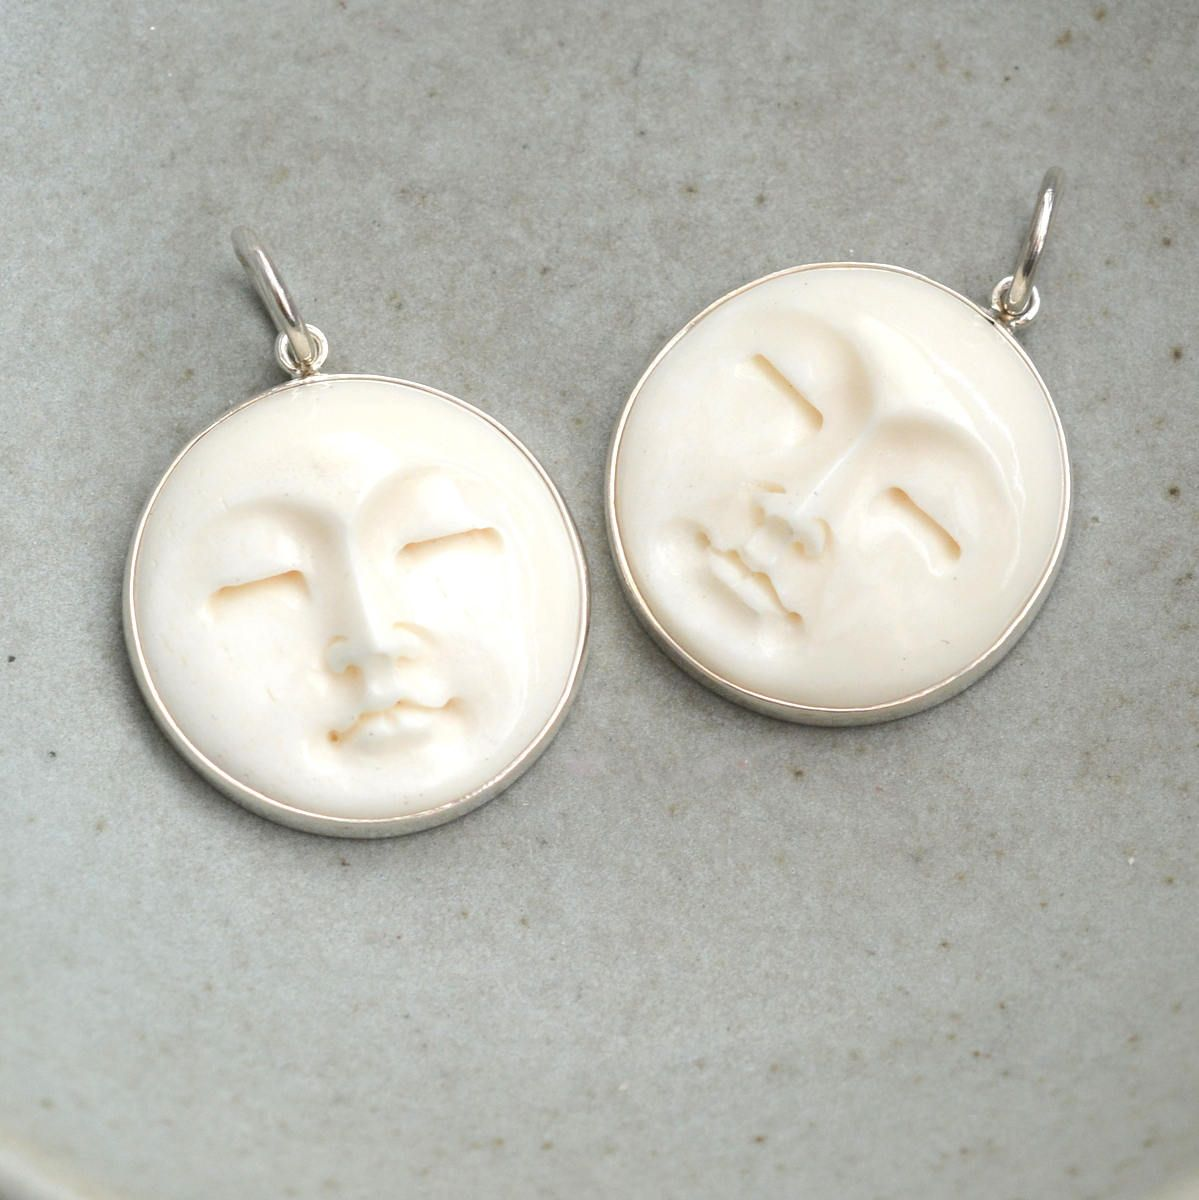 1 25mm Sterling Silver And Bone Moon Face Pendant Carved Bone Pendant Bone Carving Moon Face Jewelry Moon Pendant Necklace Bs17 1124z Moon Pendant Necklace Bone Pendant Moon Pendant